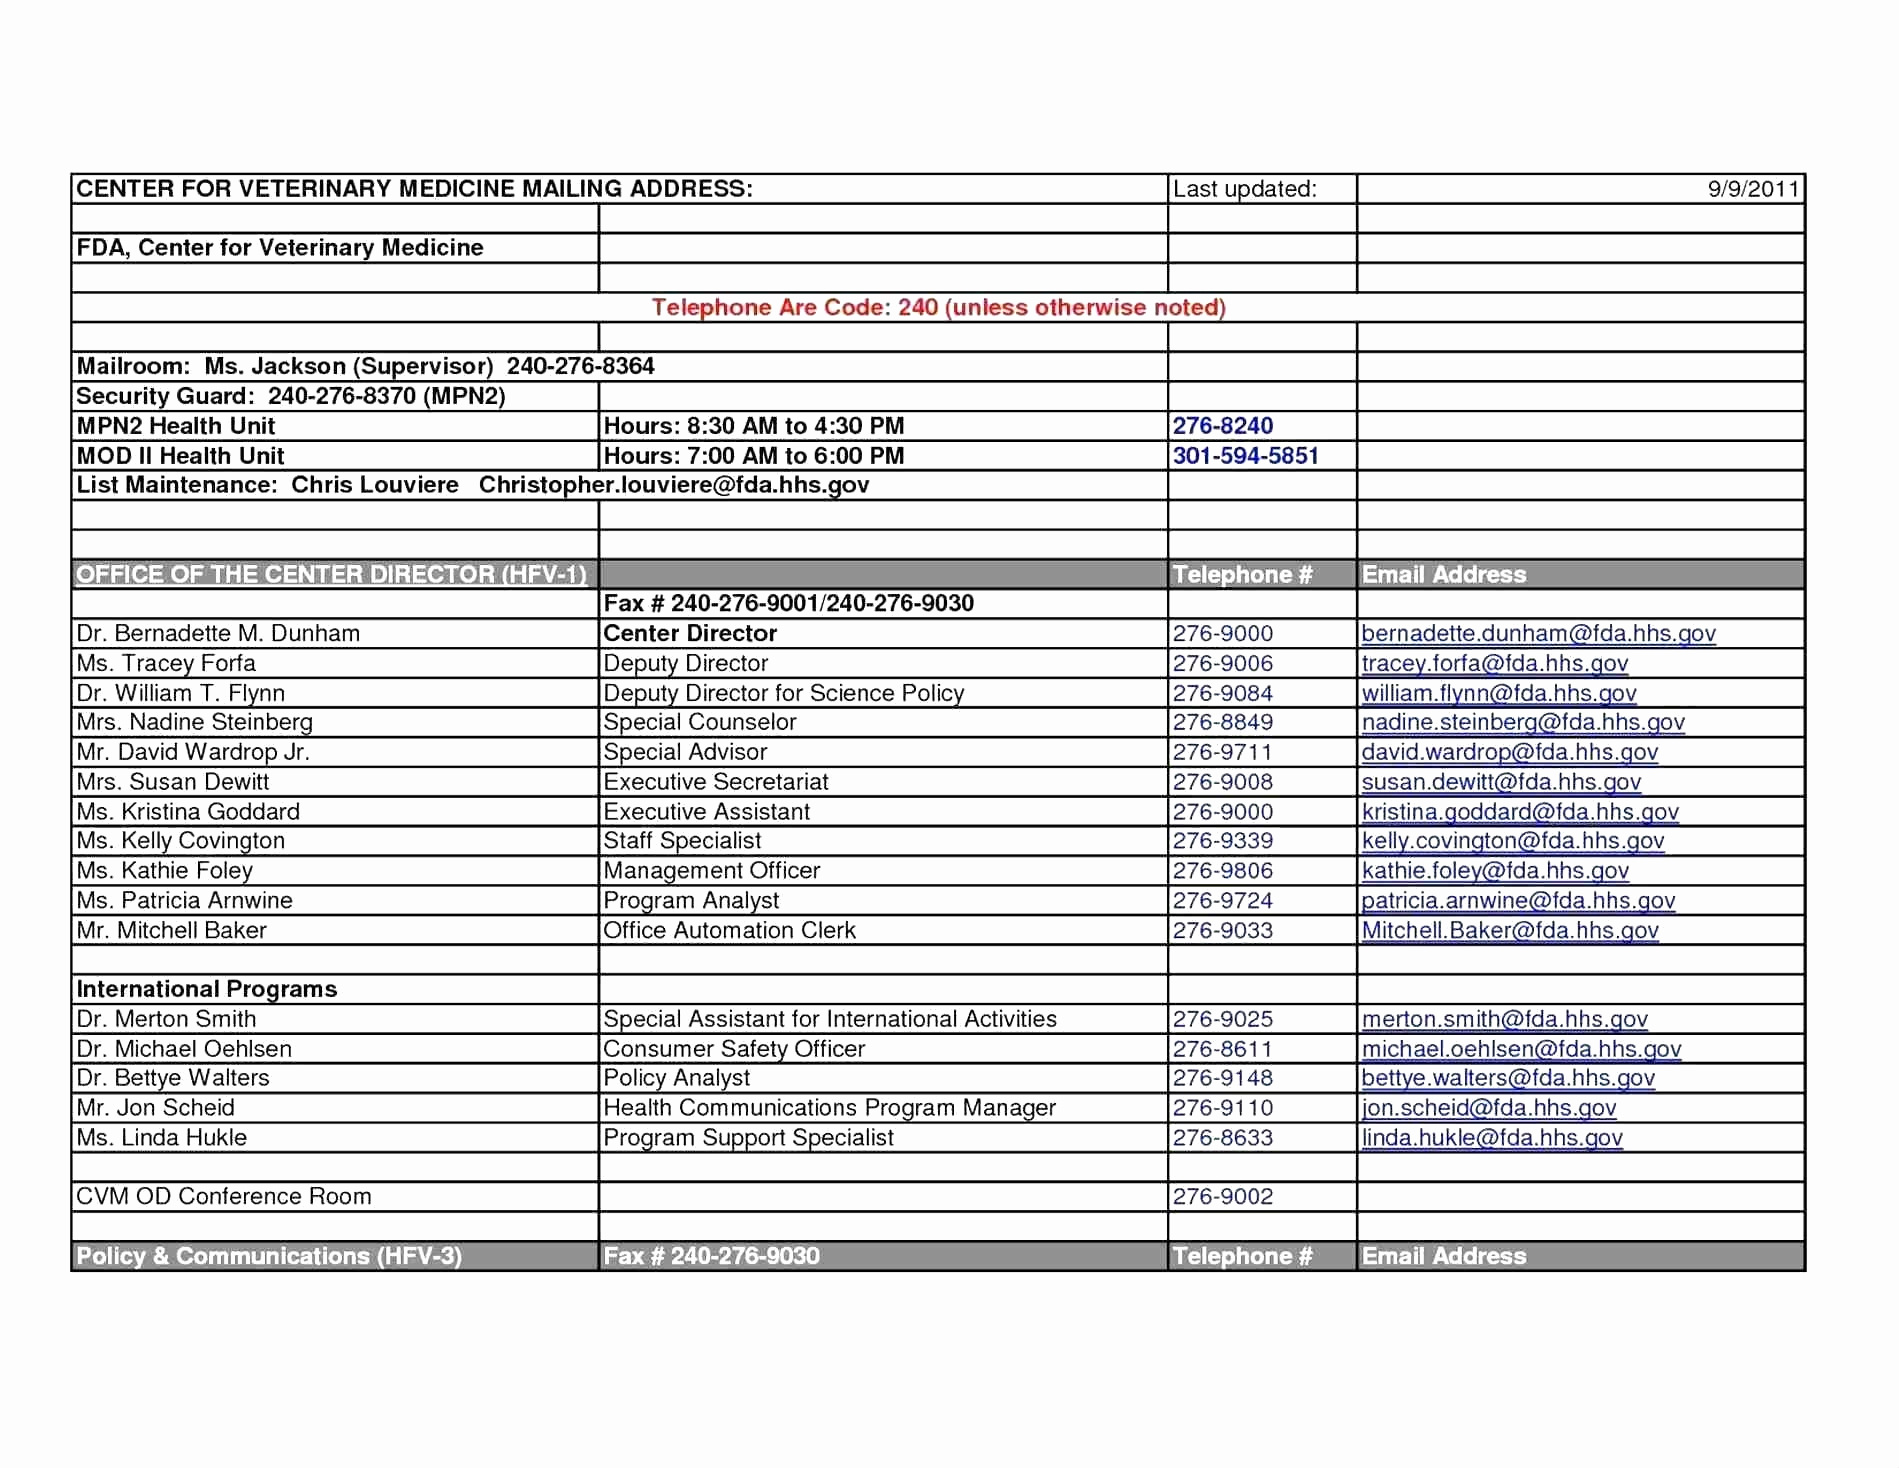 Document Of Ncci Edits Excel Spreadsheet Throughout Ncci Edits Excel Spreadsheet Document